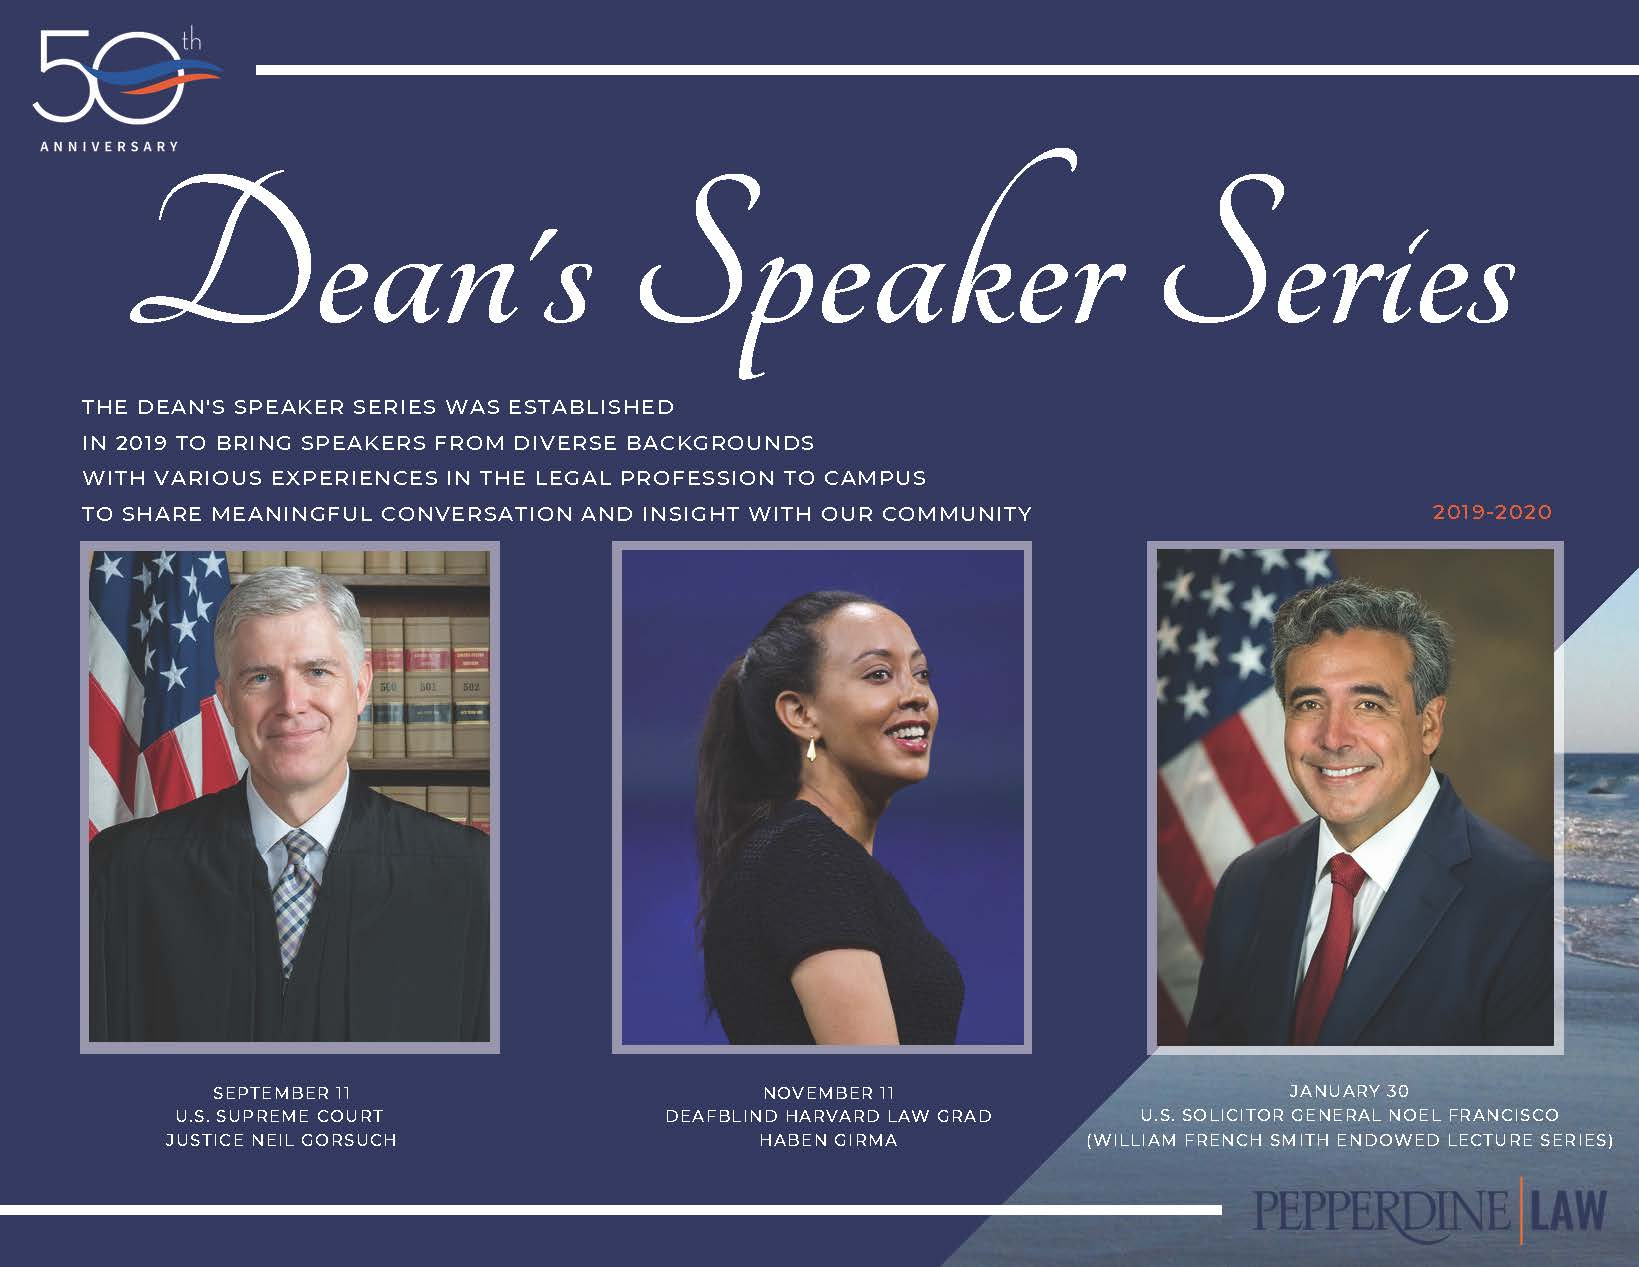 Dean's Speaker Series Flyer with images of Gorsuch, Girma, and Francisco